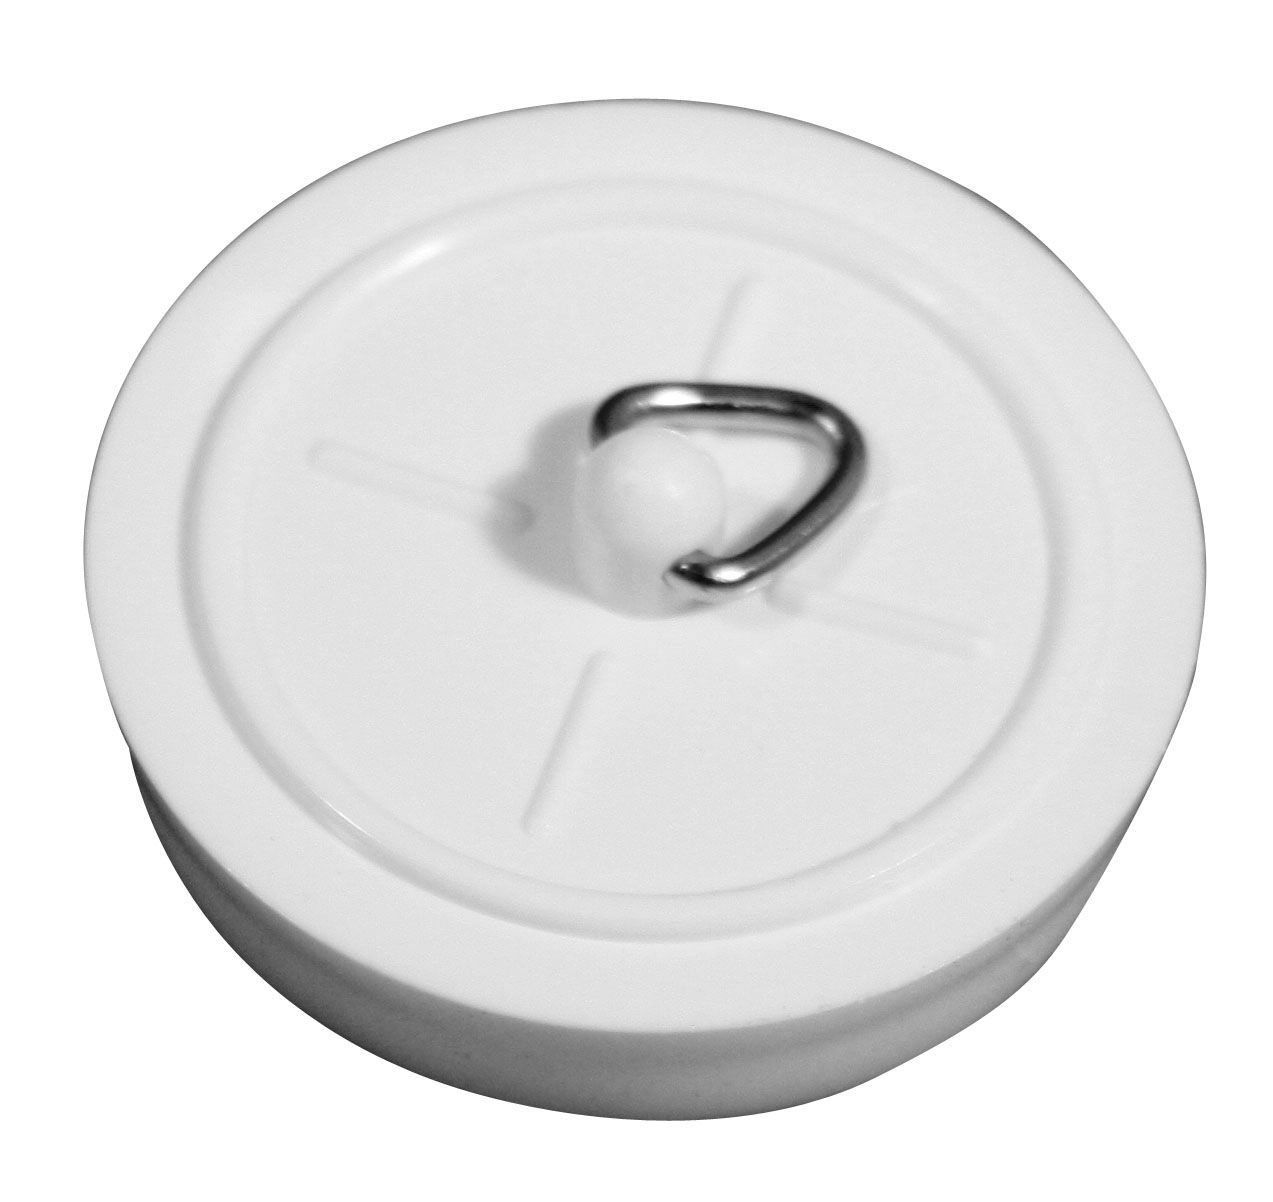 Plumbsure Plastic Sink & Bath Plug (Dia)40mm | Departments ...